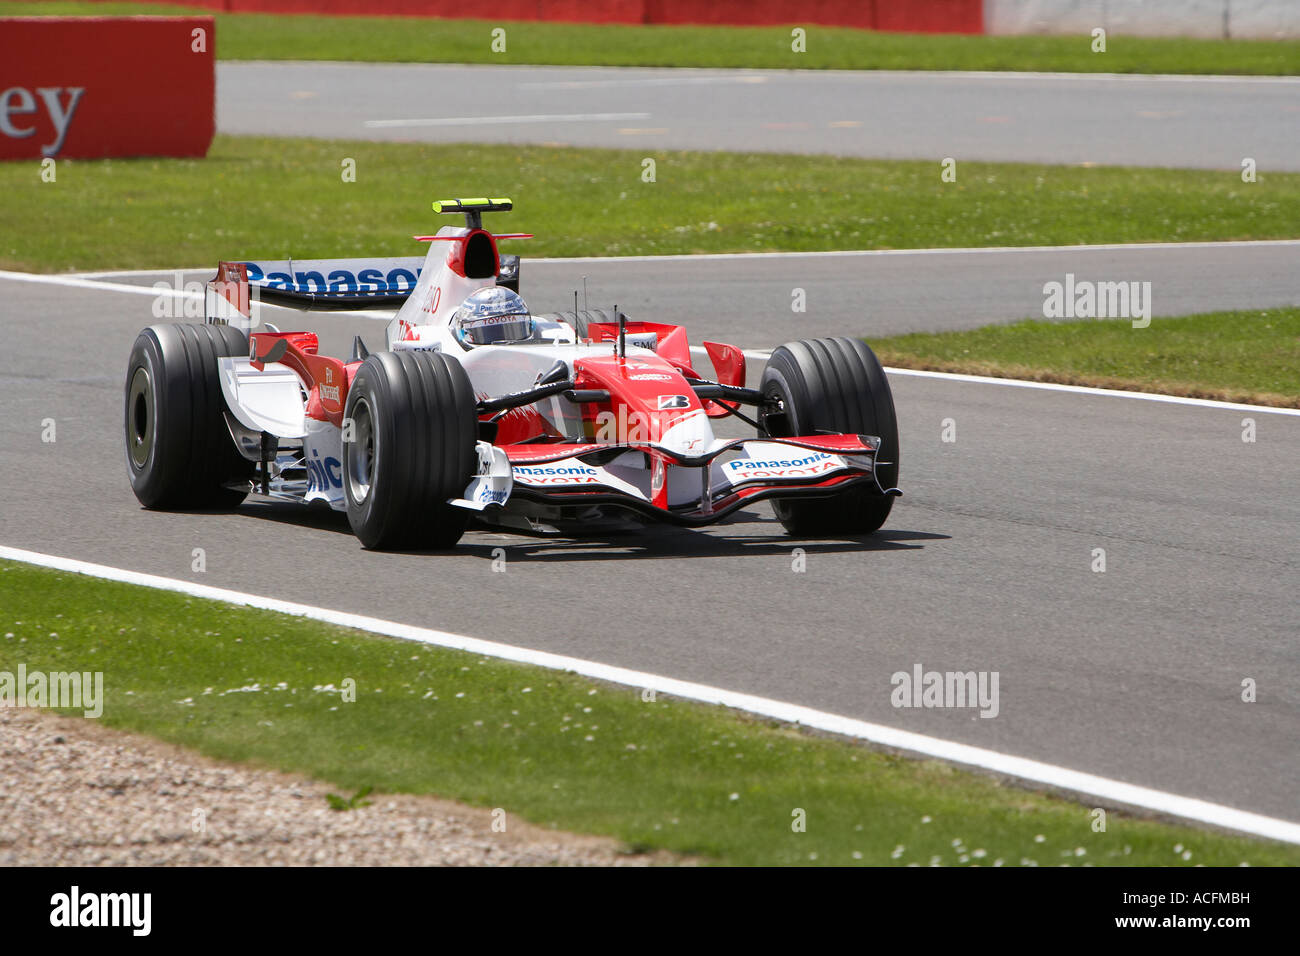 Jarno Trulli driving his Forumla One Panasonic Toyota Racing Car at the British Grand Prix 2007 - Stock Image